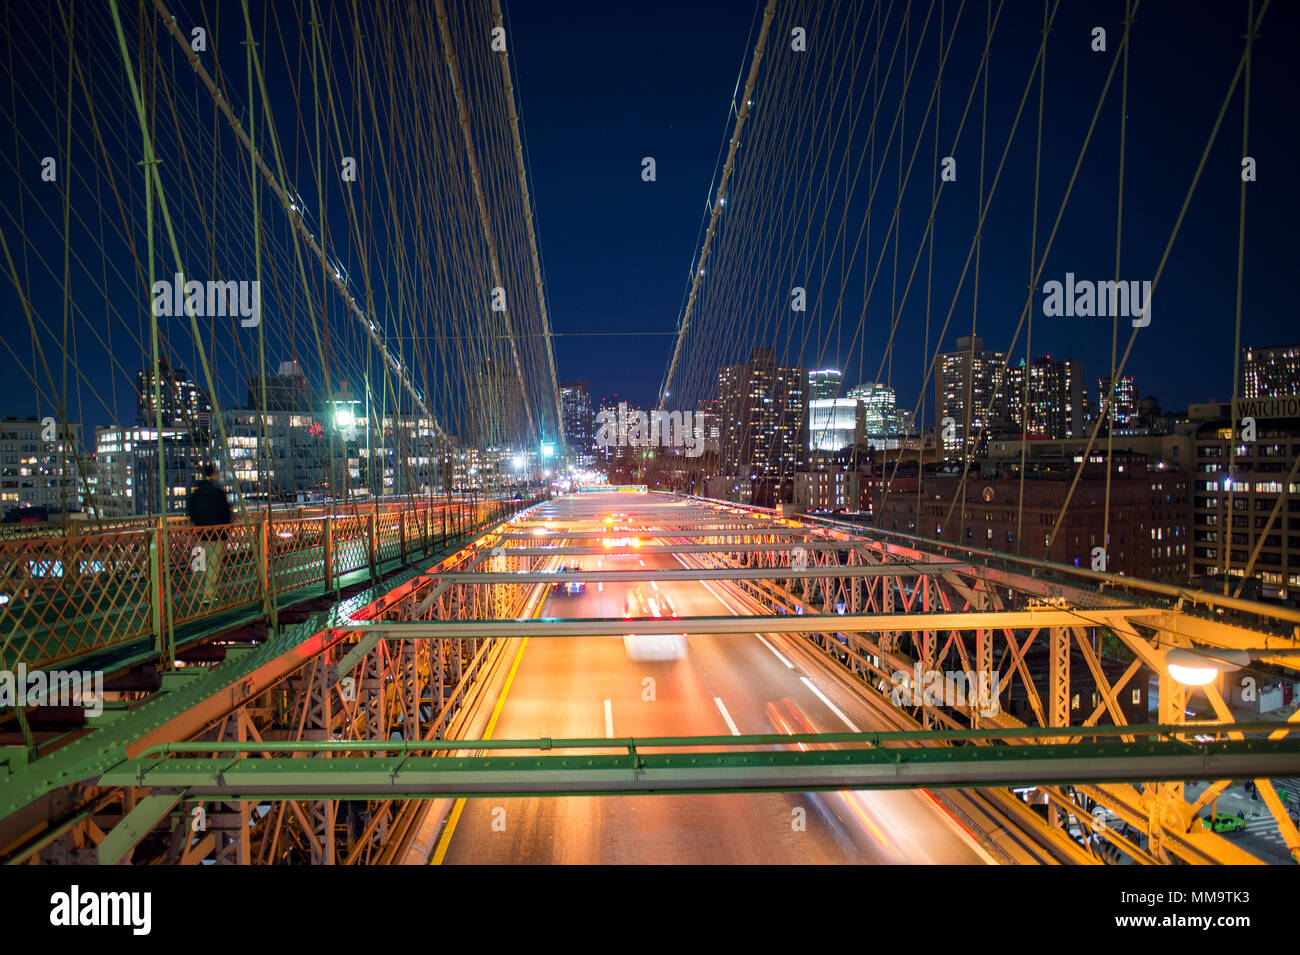 Long exposure picture of cars passing over the illuminated Brooklyn Bridge at night. Manhattan skyline in the background, New York city, USA. - Stock Image